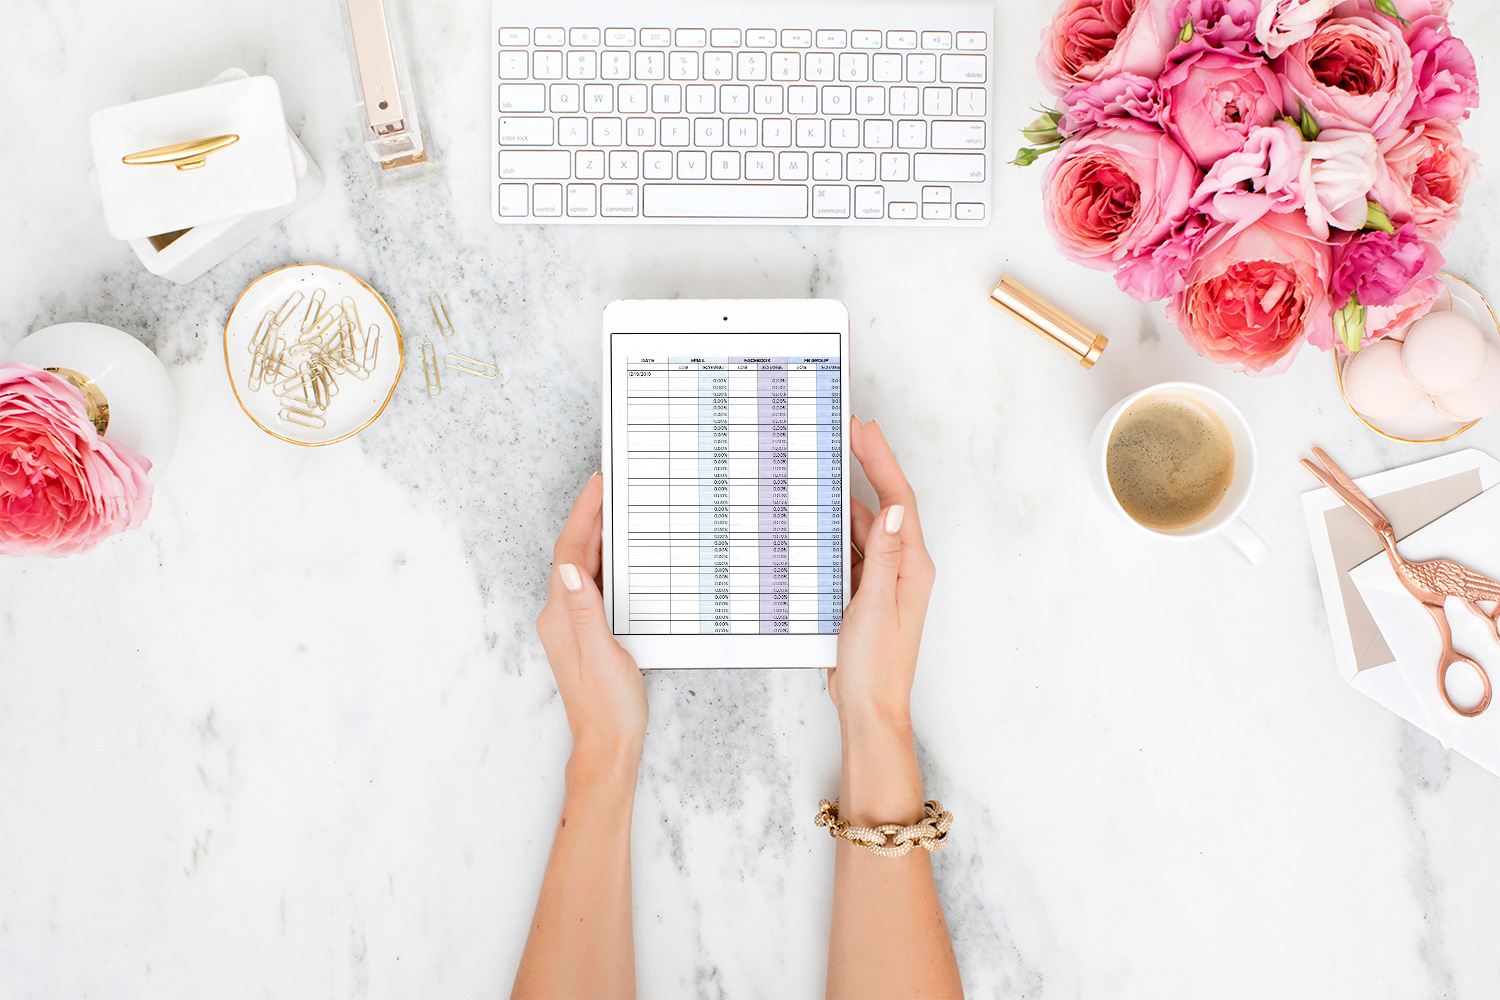 The Brand Growth Tracker is a set of 5 spreadsheets that help you set audience goals and keep track of all the important business stats.